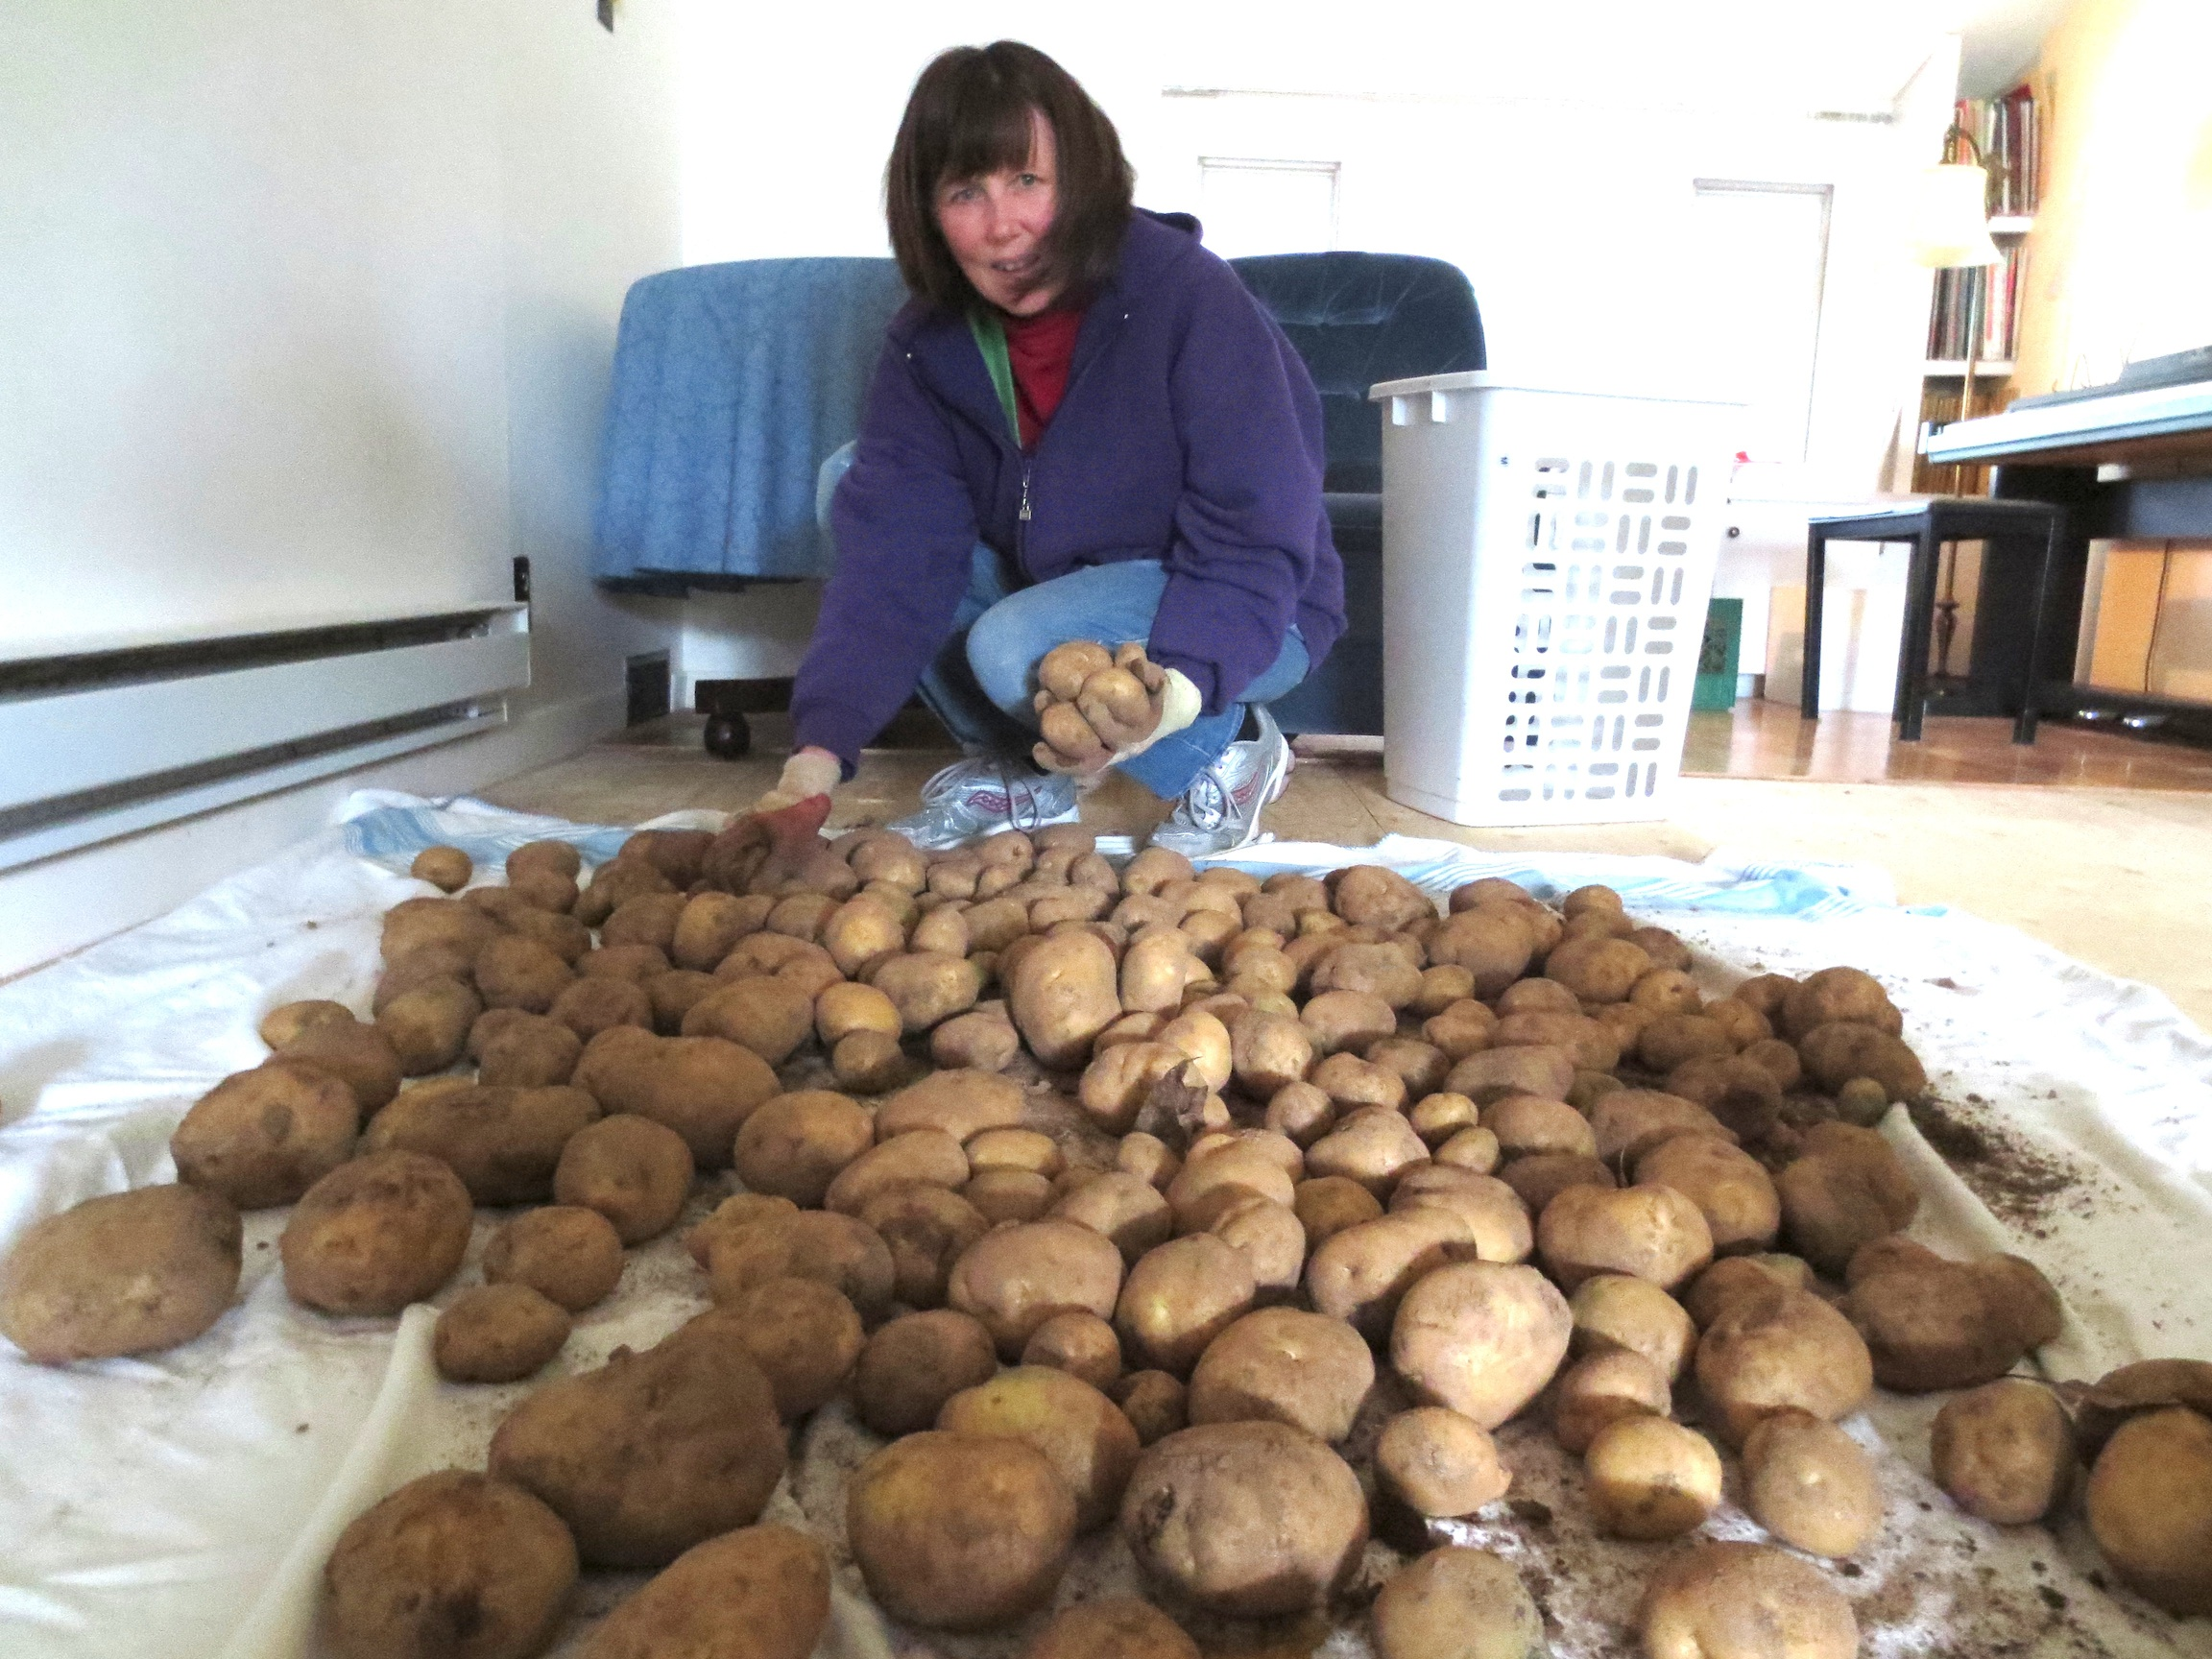 Kathleen lays out potatoes, freshly dug from the ground, on our living room floor for drying.